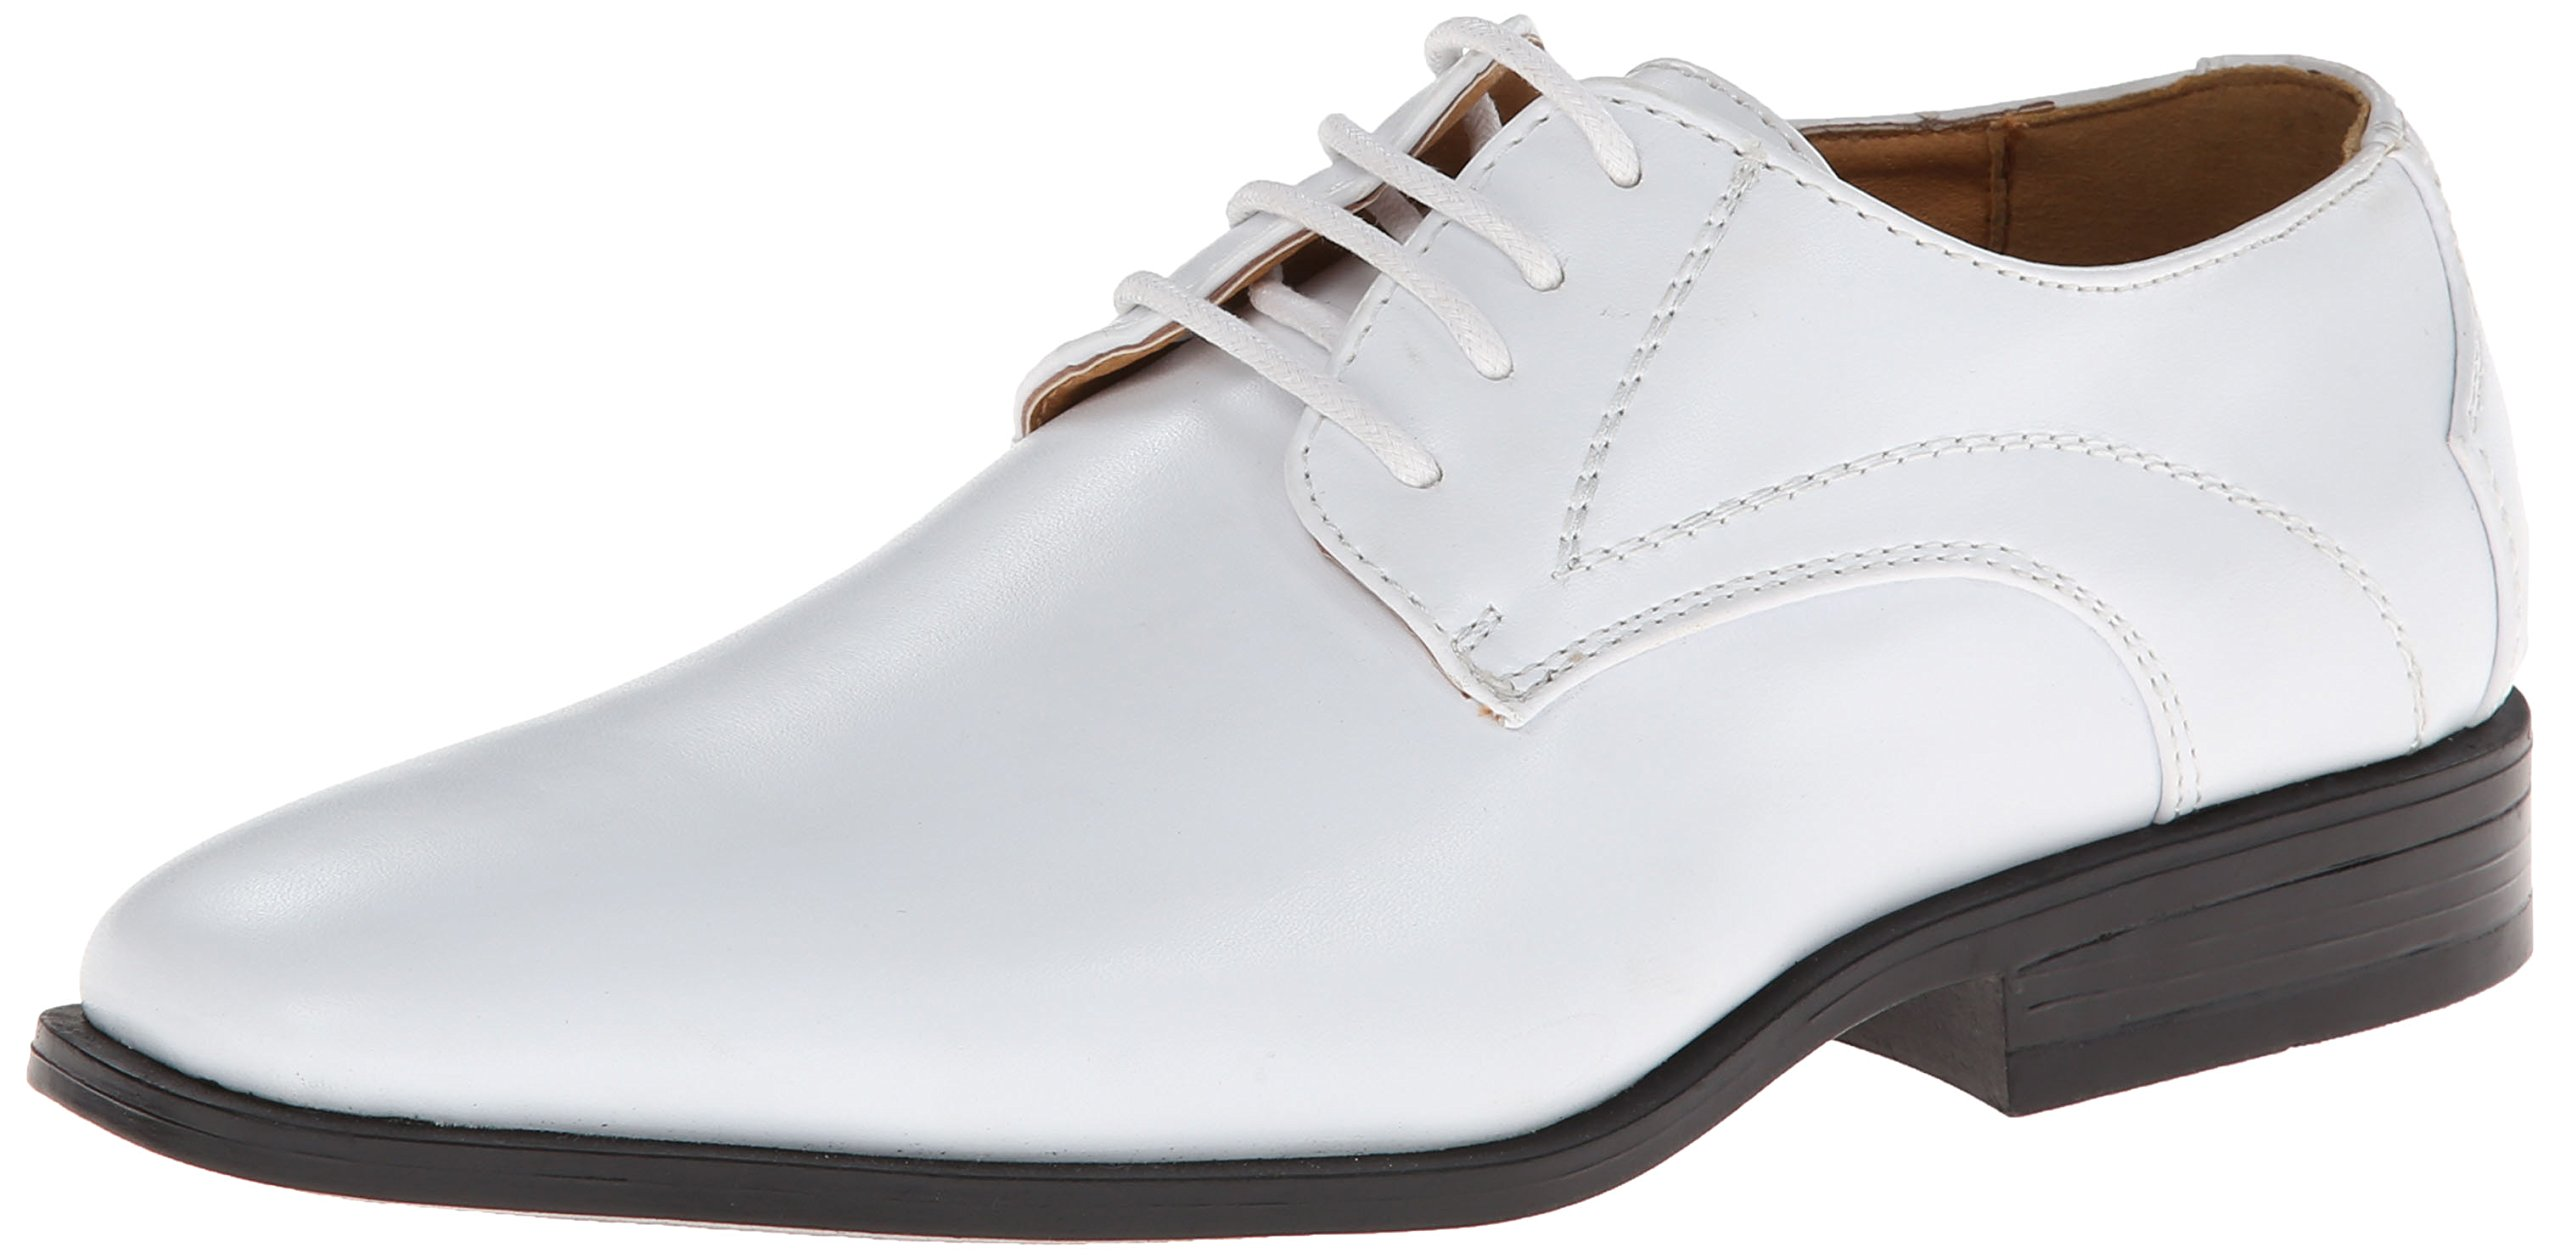 Stacy Adams Carmichael Plain Toe Lace-up Uniform Oxford Dress Shoe (Little Kid/Big Kid),White,12 M US Little Kid